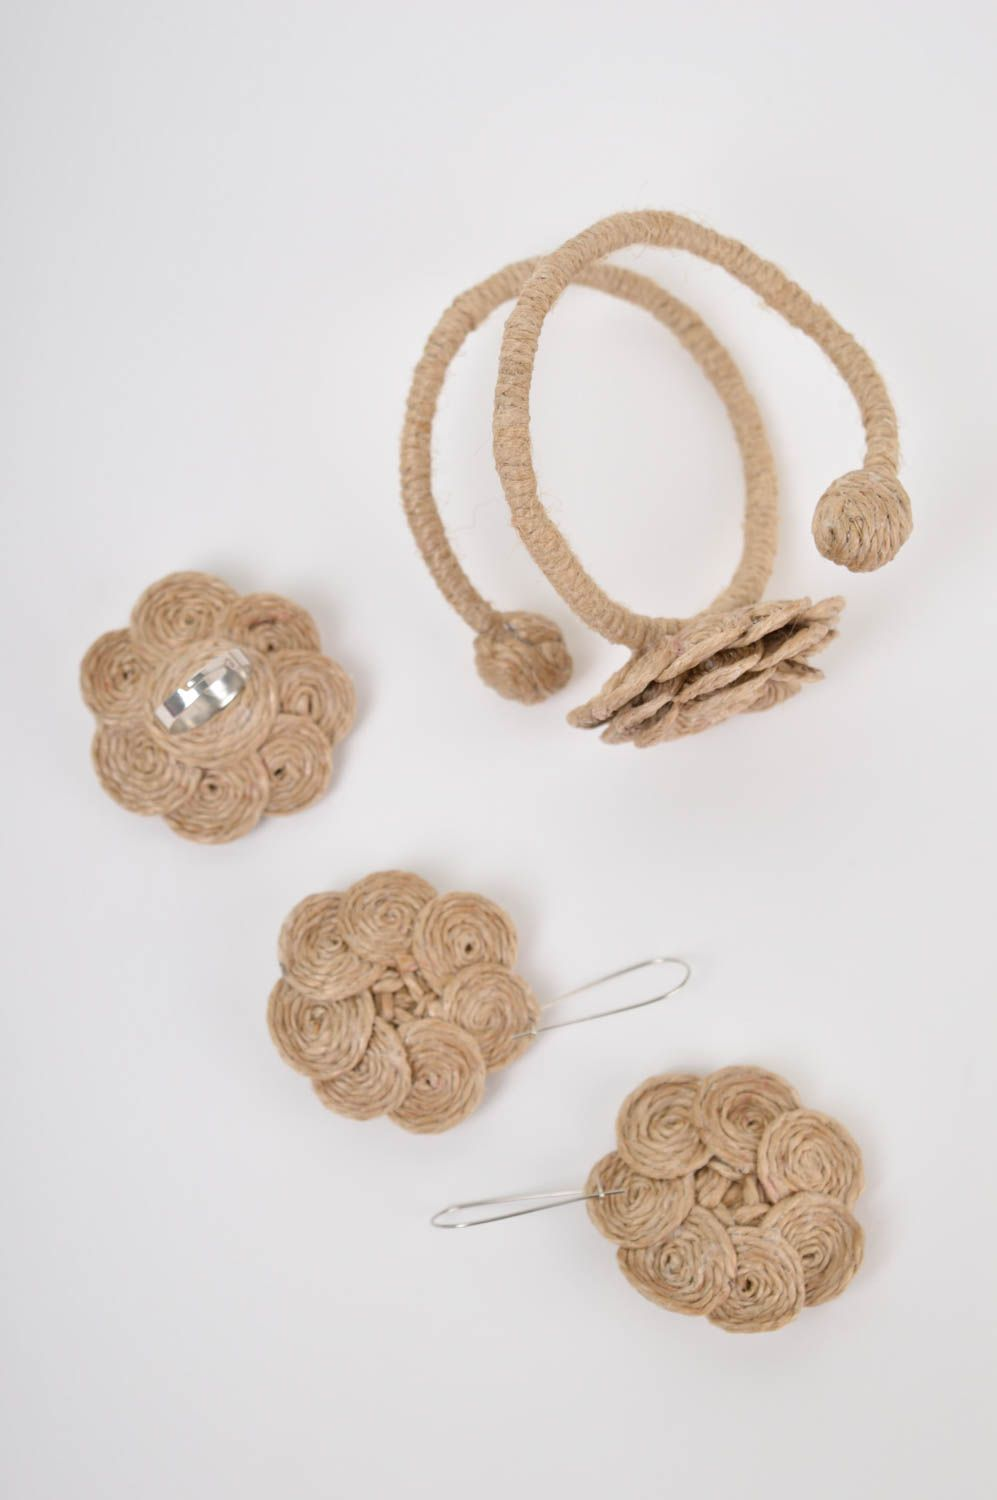 Unusual handmade cord jewelry set handmade earrings bracelet designs flower ring photo 3